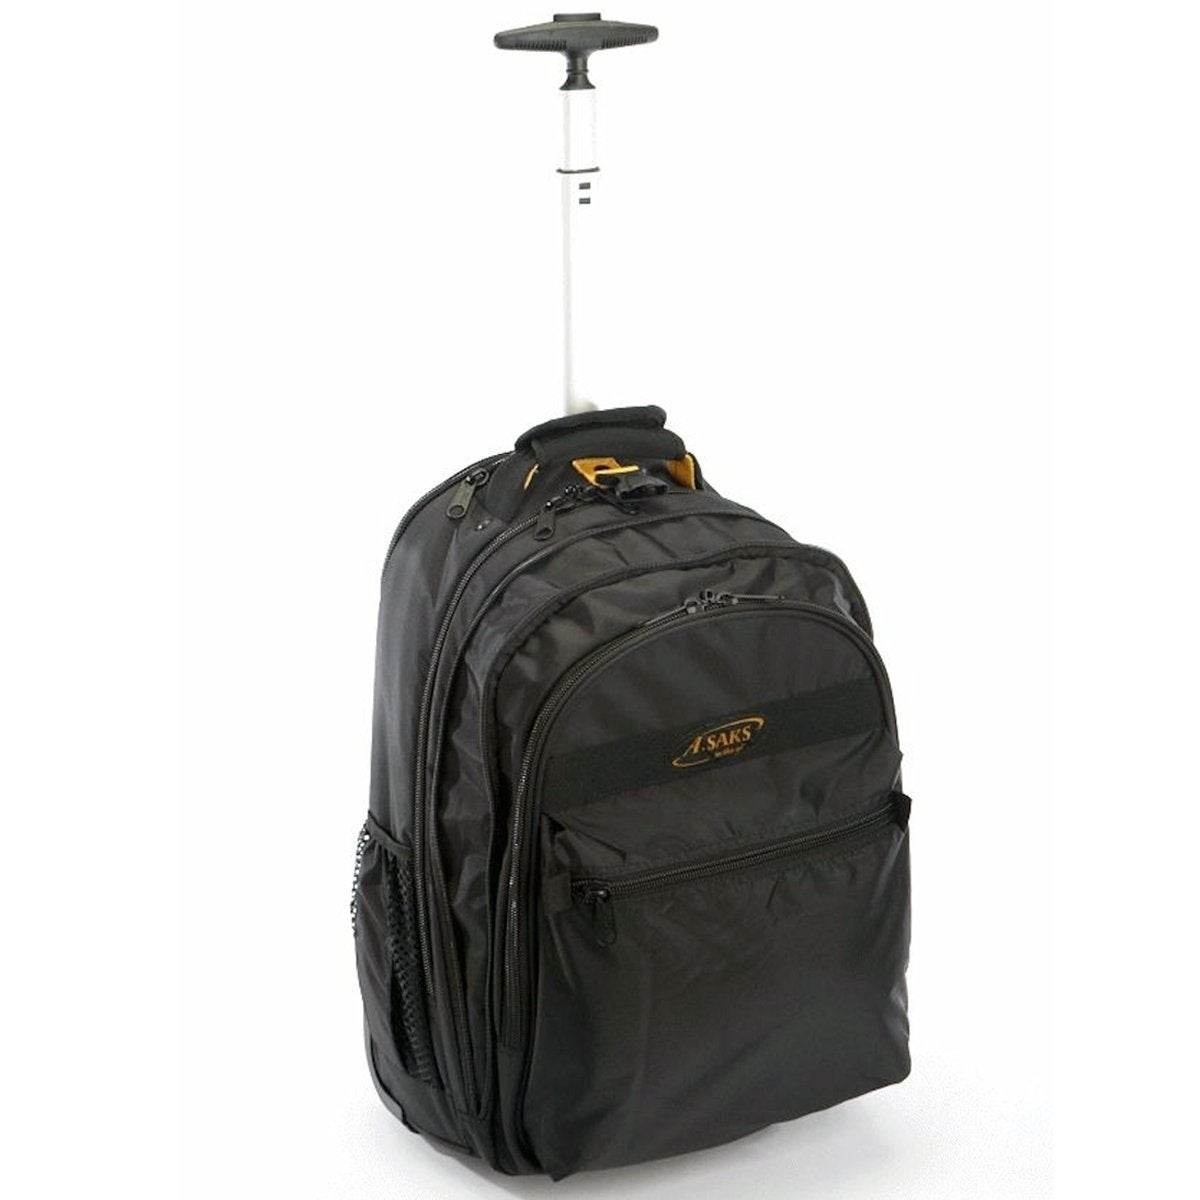 A.Saks A.Saks Expandable Rolling 15.4-inch Laptop Backpac...